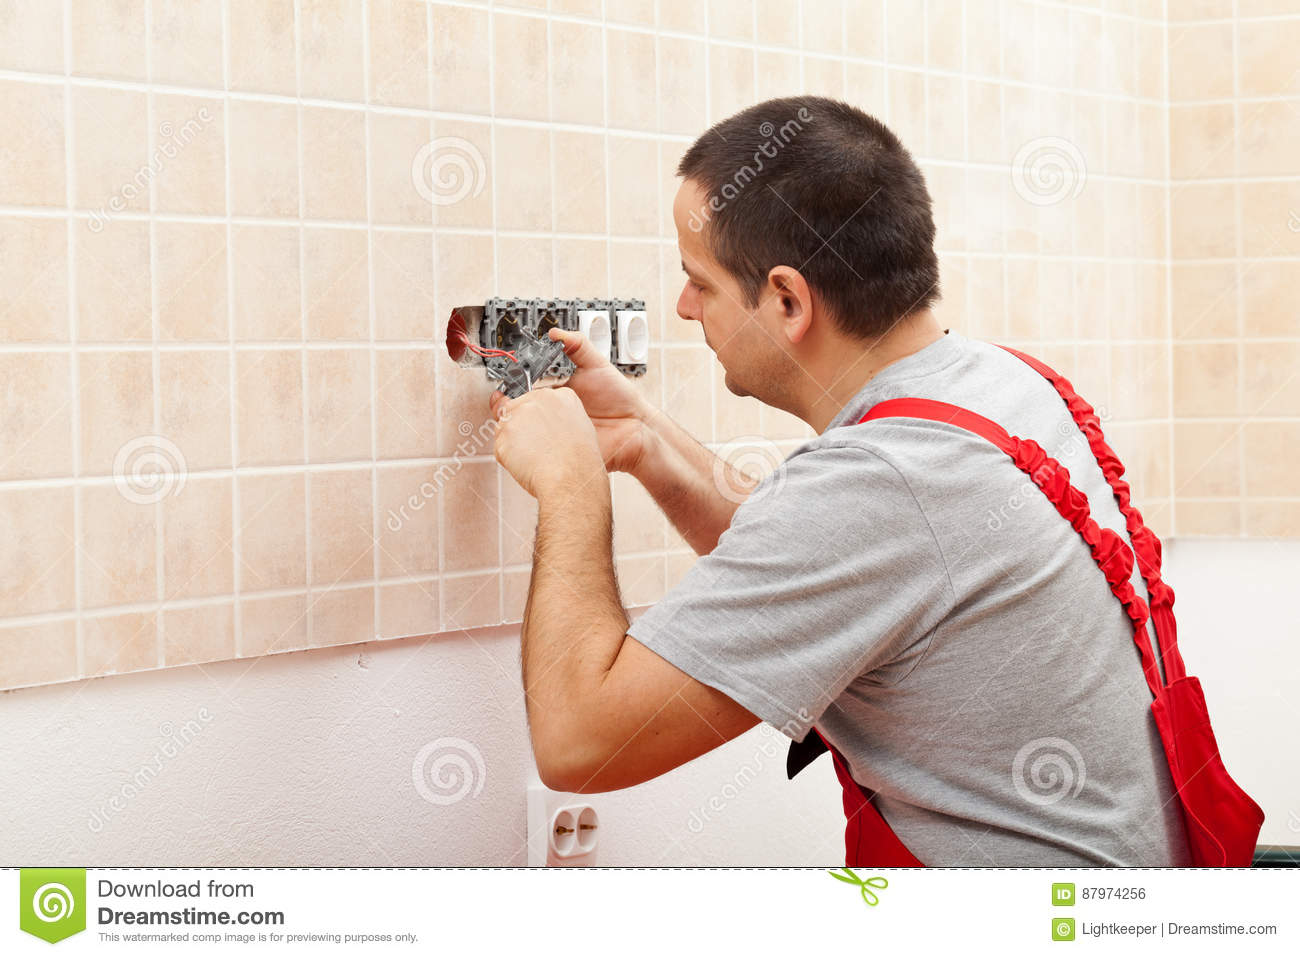 Electrician installing electrical wall fixture